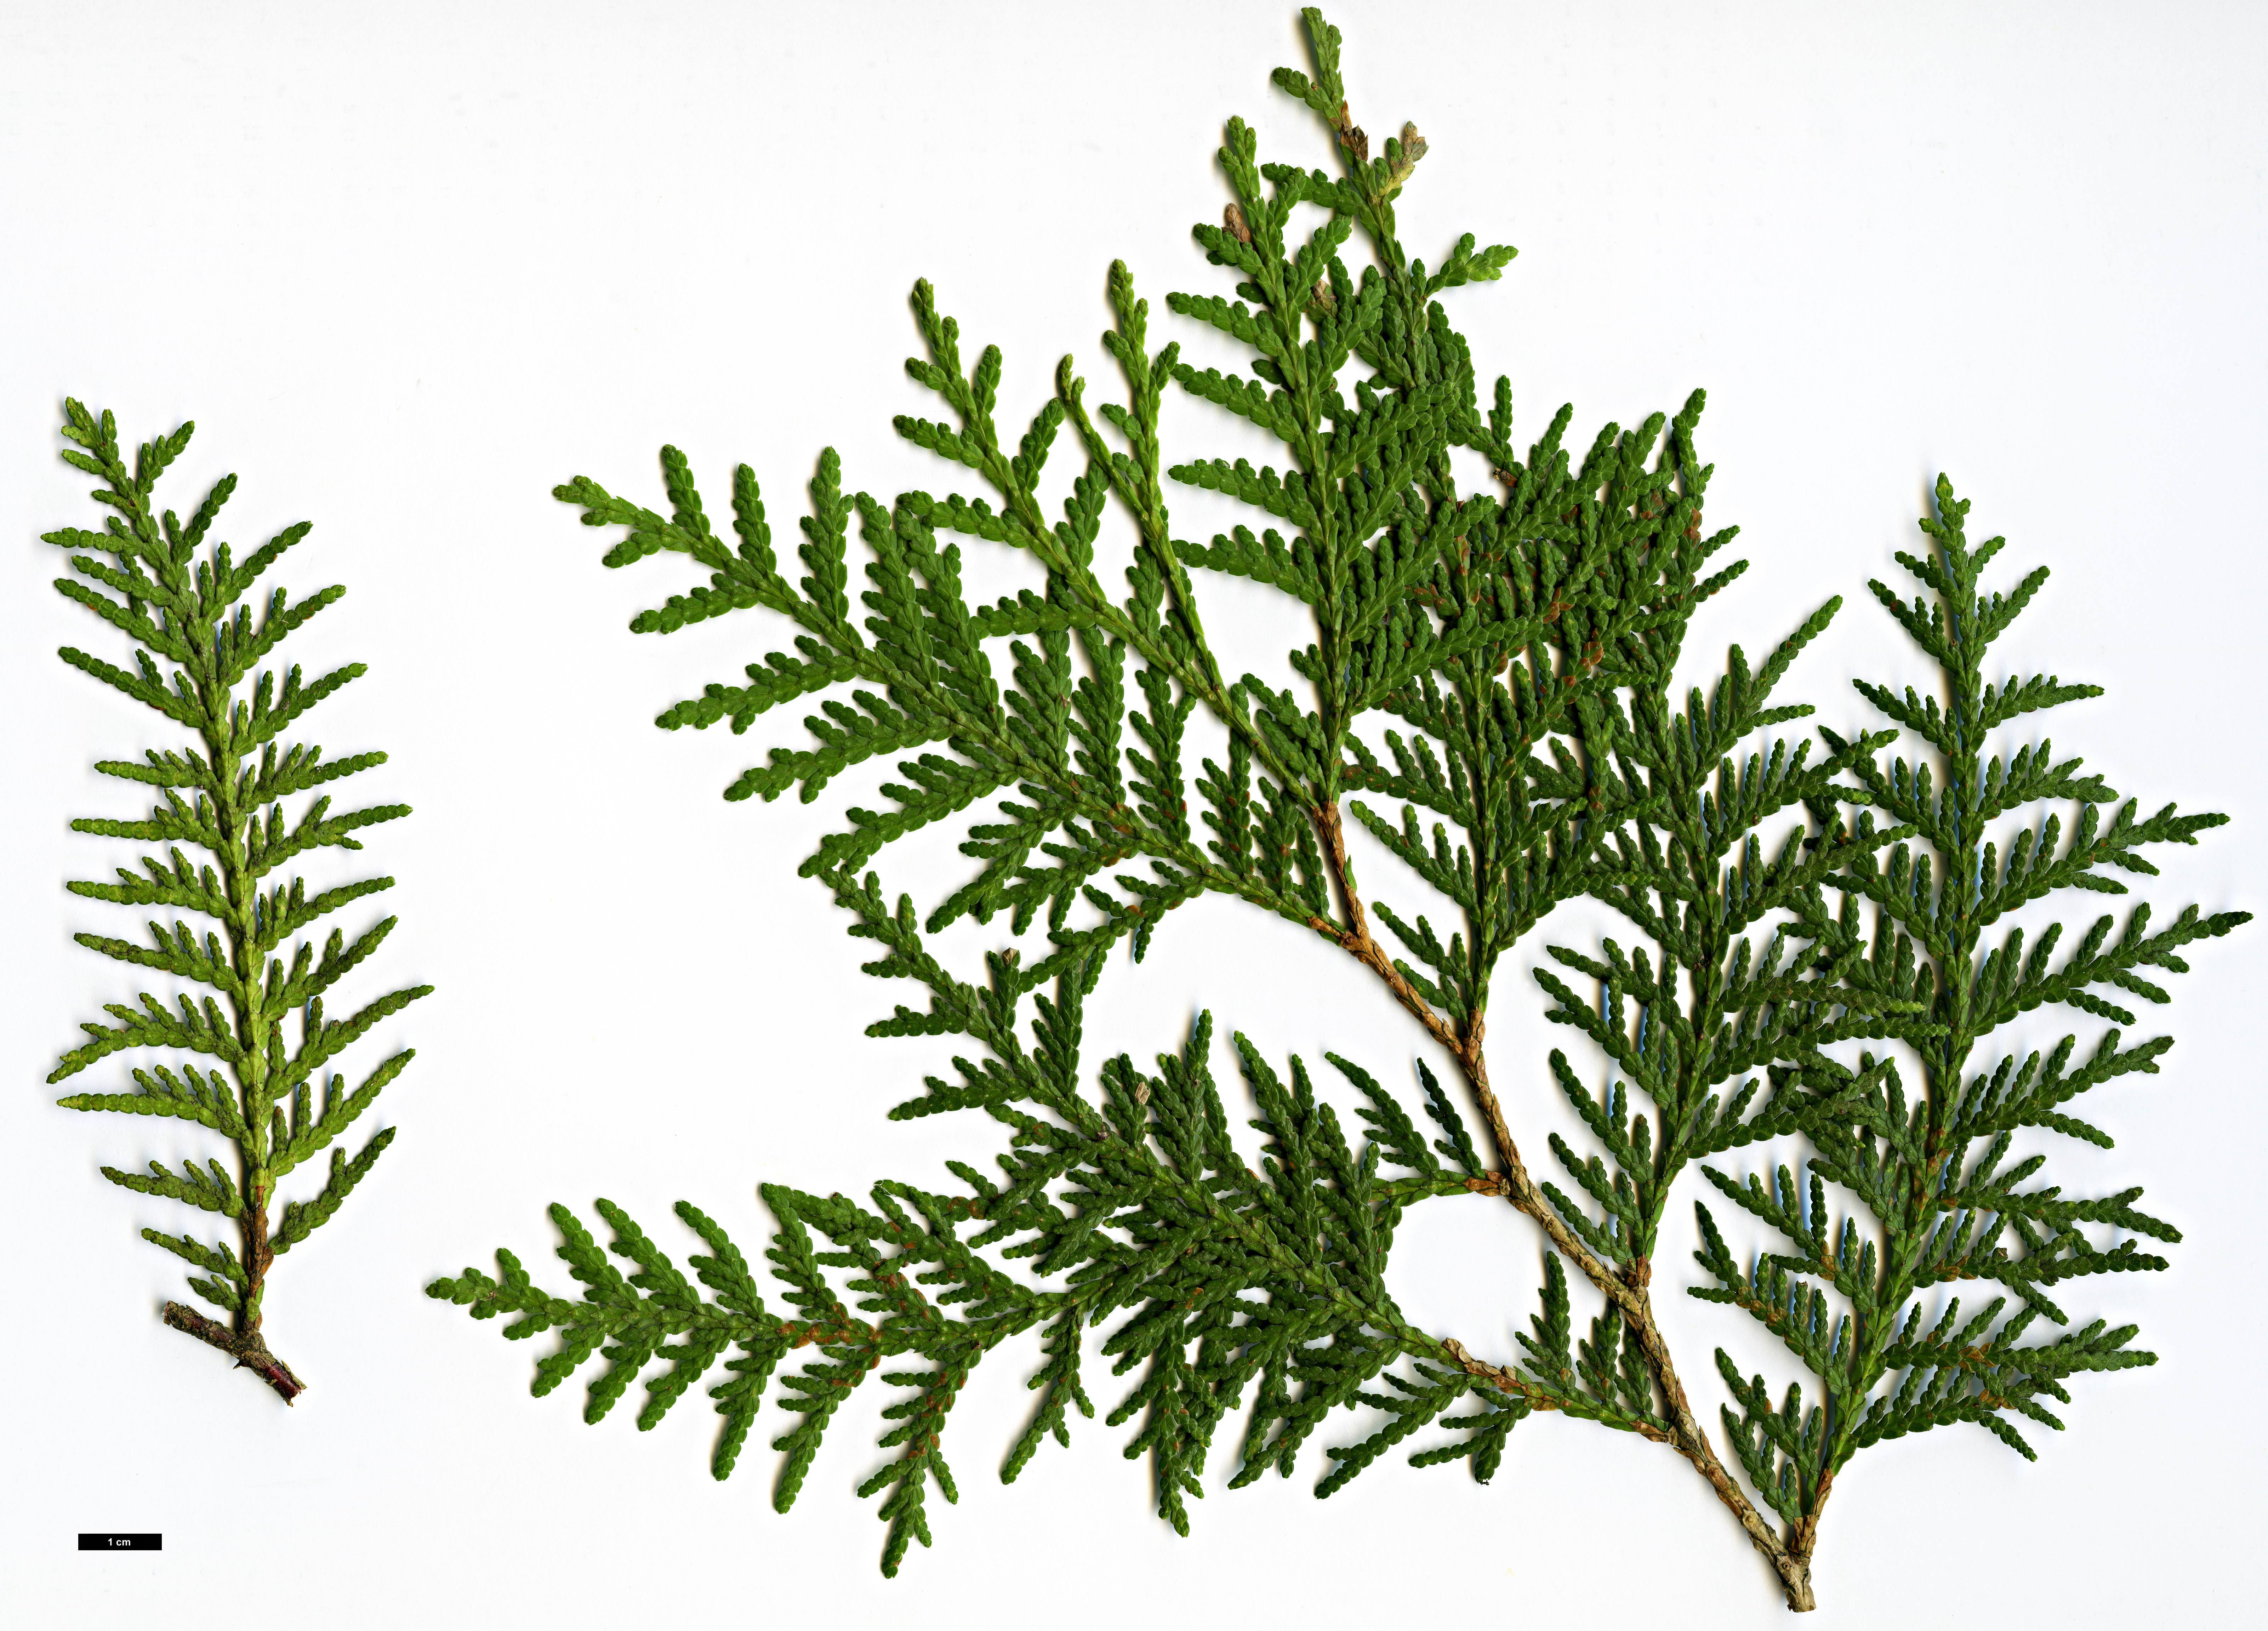 High resolution image: Family: Cupressaceae - Genus: Thuja - Taxon: occidentalis